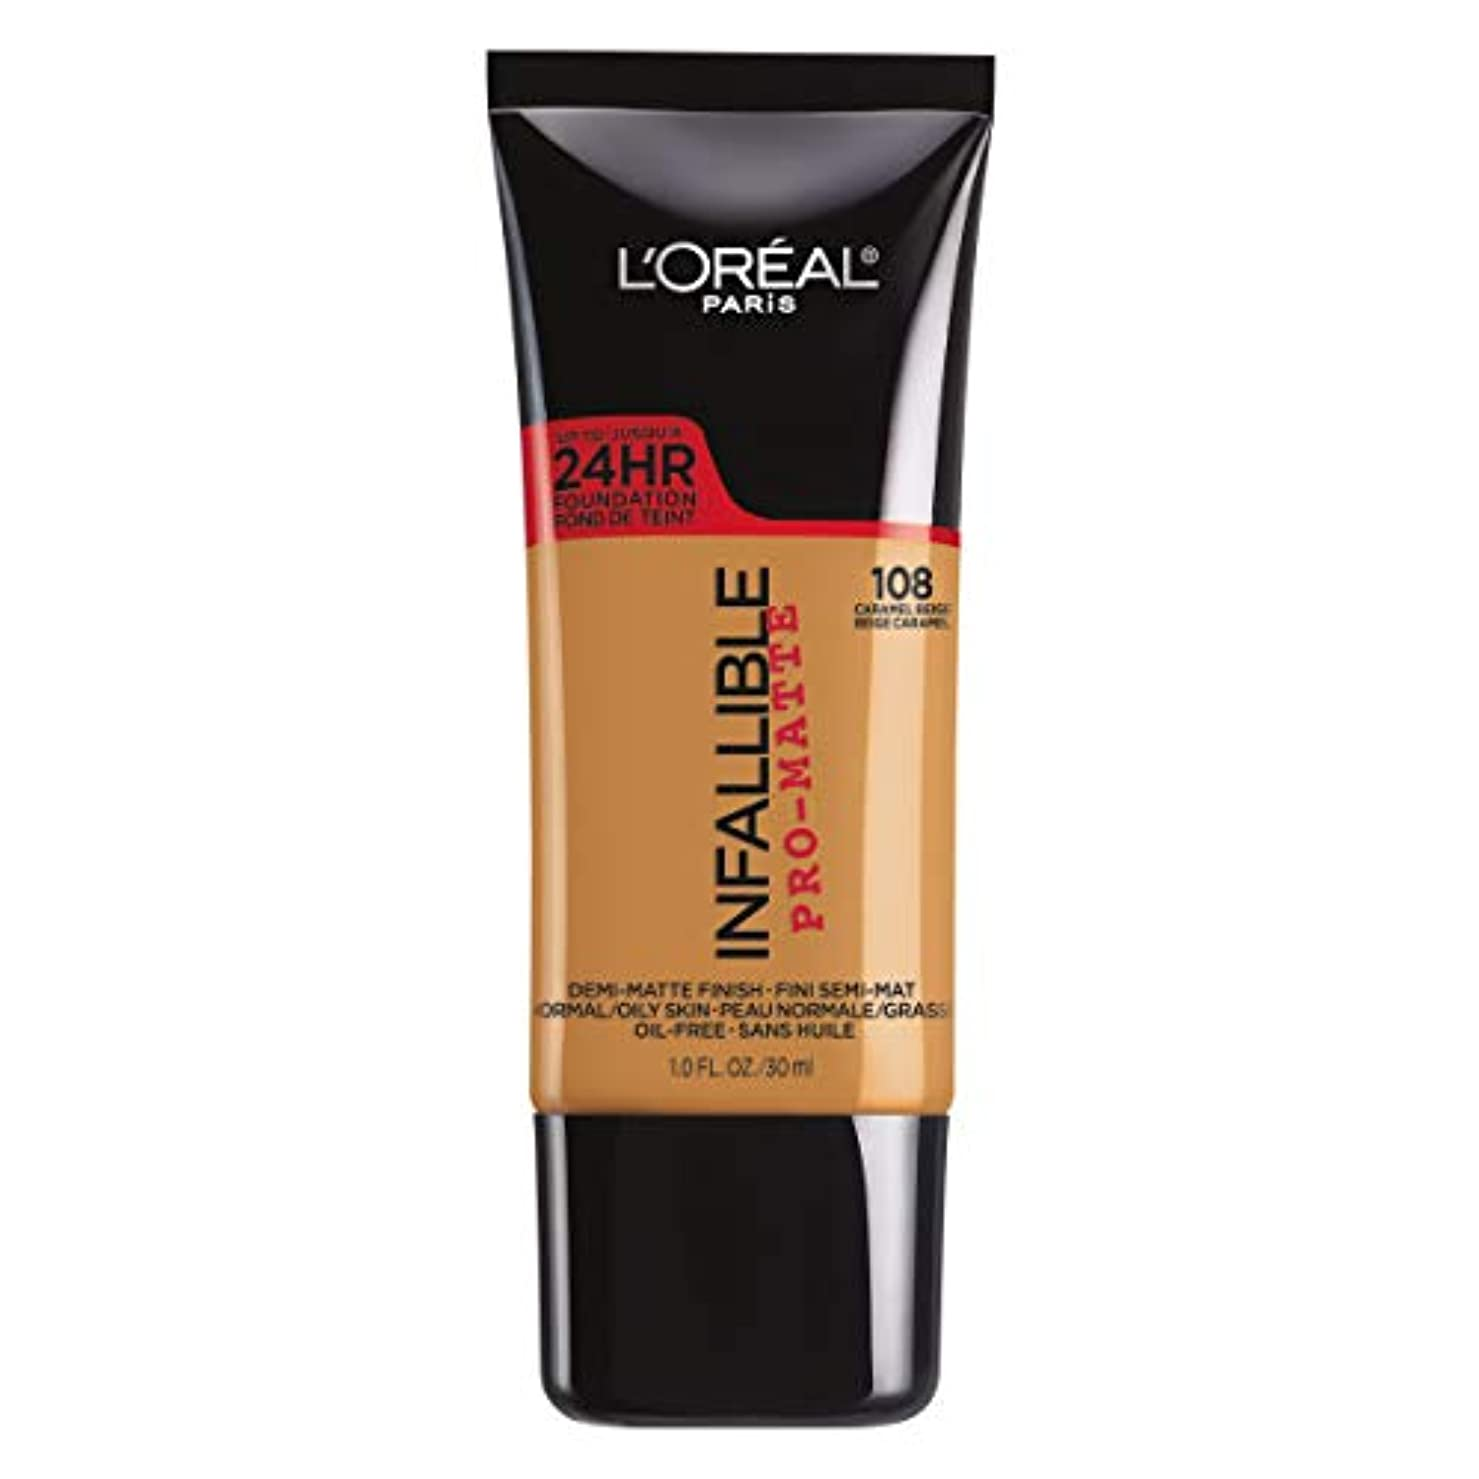 わずらわしい方言密度L'Oreal Paris Infallible Pro-Matte Foundation Makeup, 108 Caramel Beige, 1 fl. oz[並行輸入品]